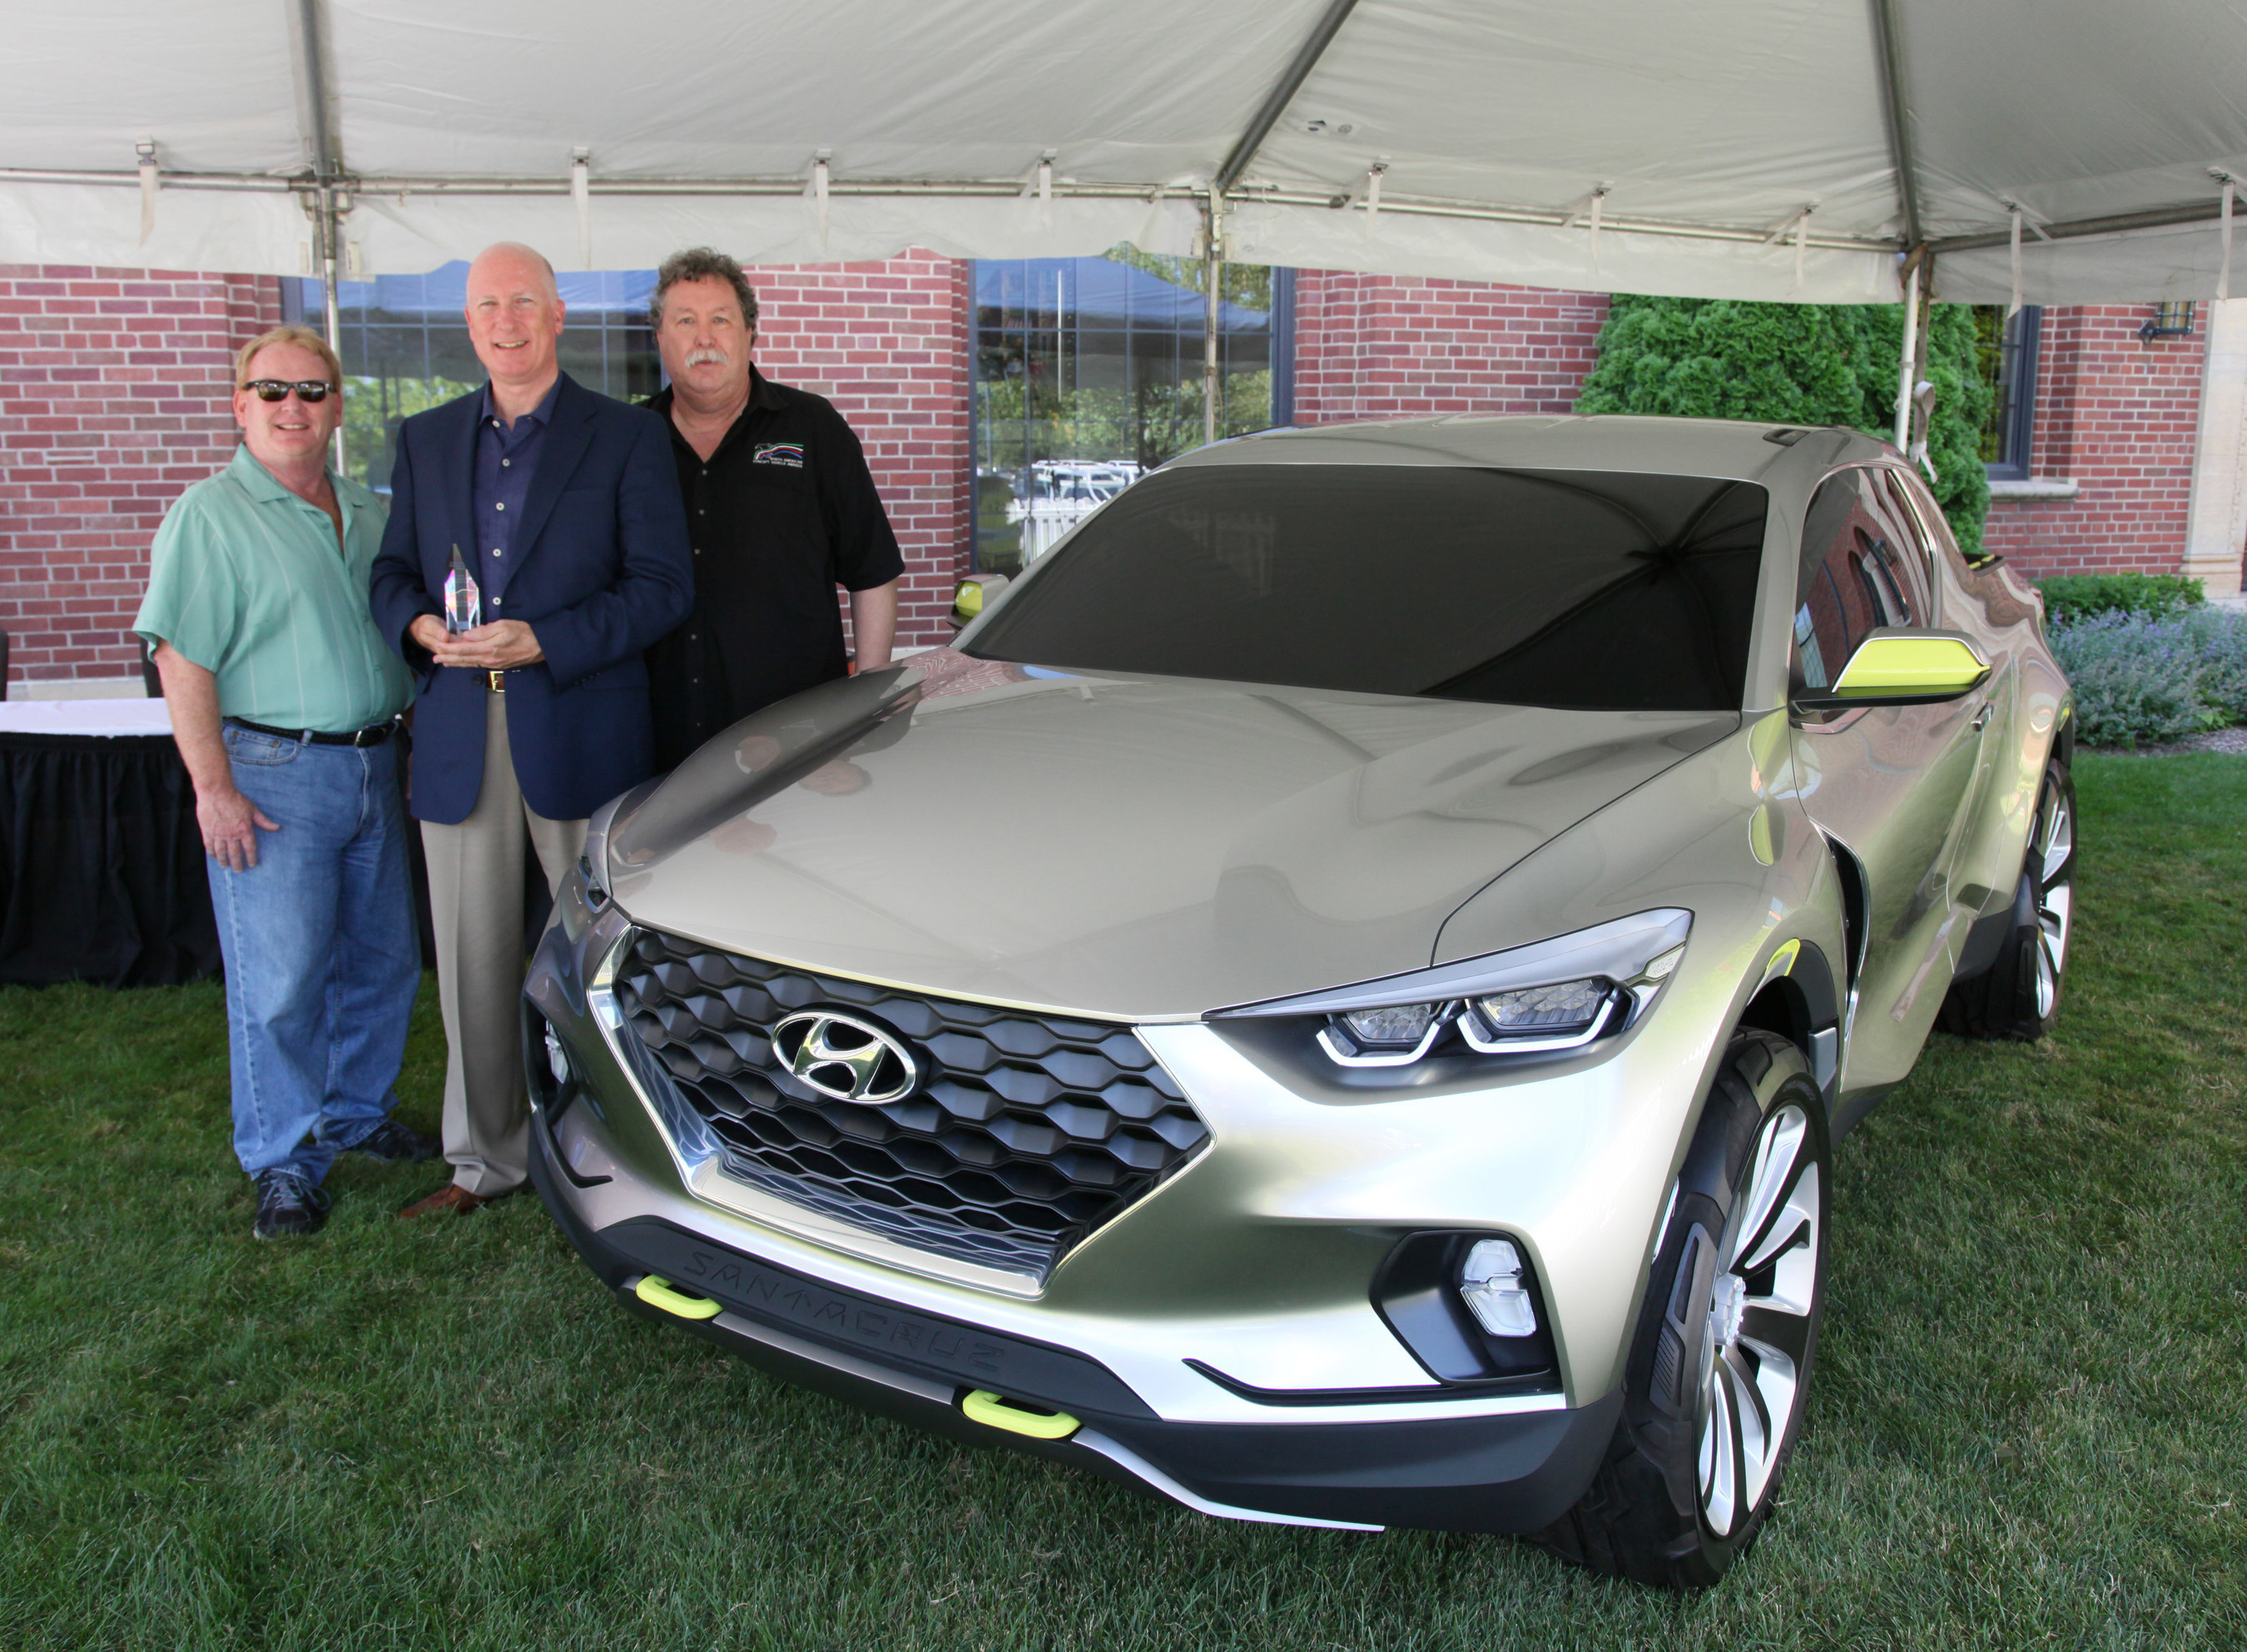 Santa Cruz Wins 2015 North American Concept Truck of the Year Award on Sunday, July 26. (L to R: Mark Phelan, NACVOTY Juror and Detroit Free Press Auto Critic, Jim Trainor, Senior Group Manager of Product Public Relations for Hyundai Motor America, and Tom Kelley, NACVOTY Juror)